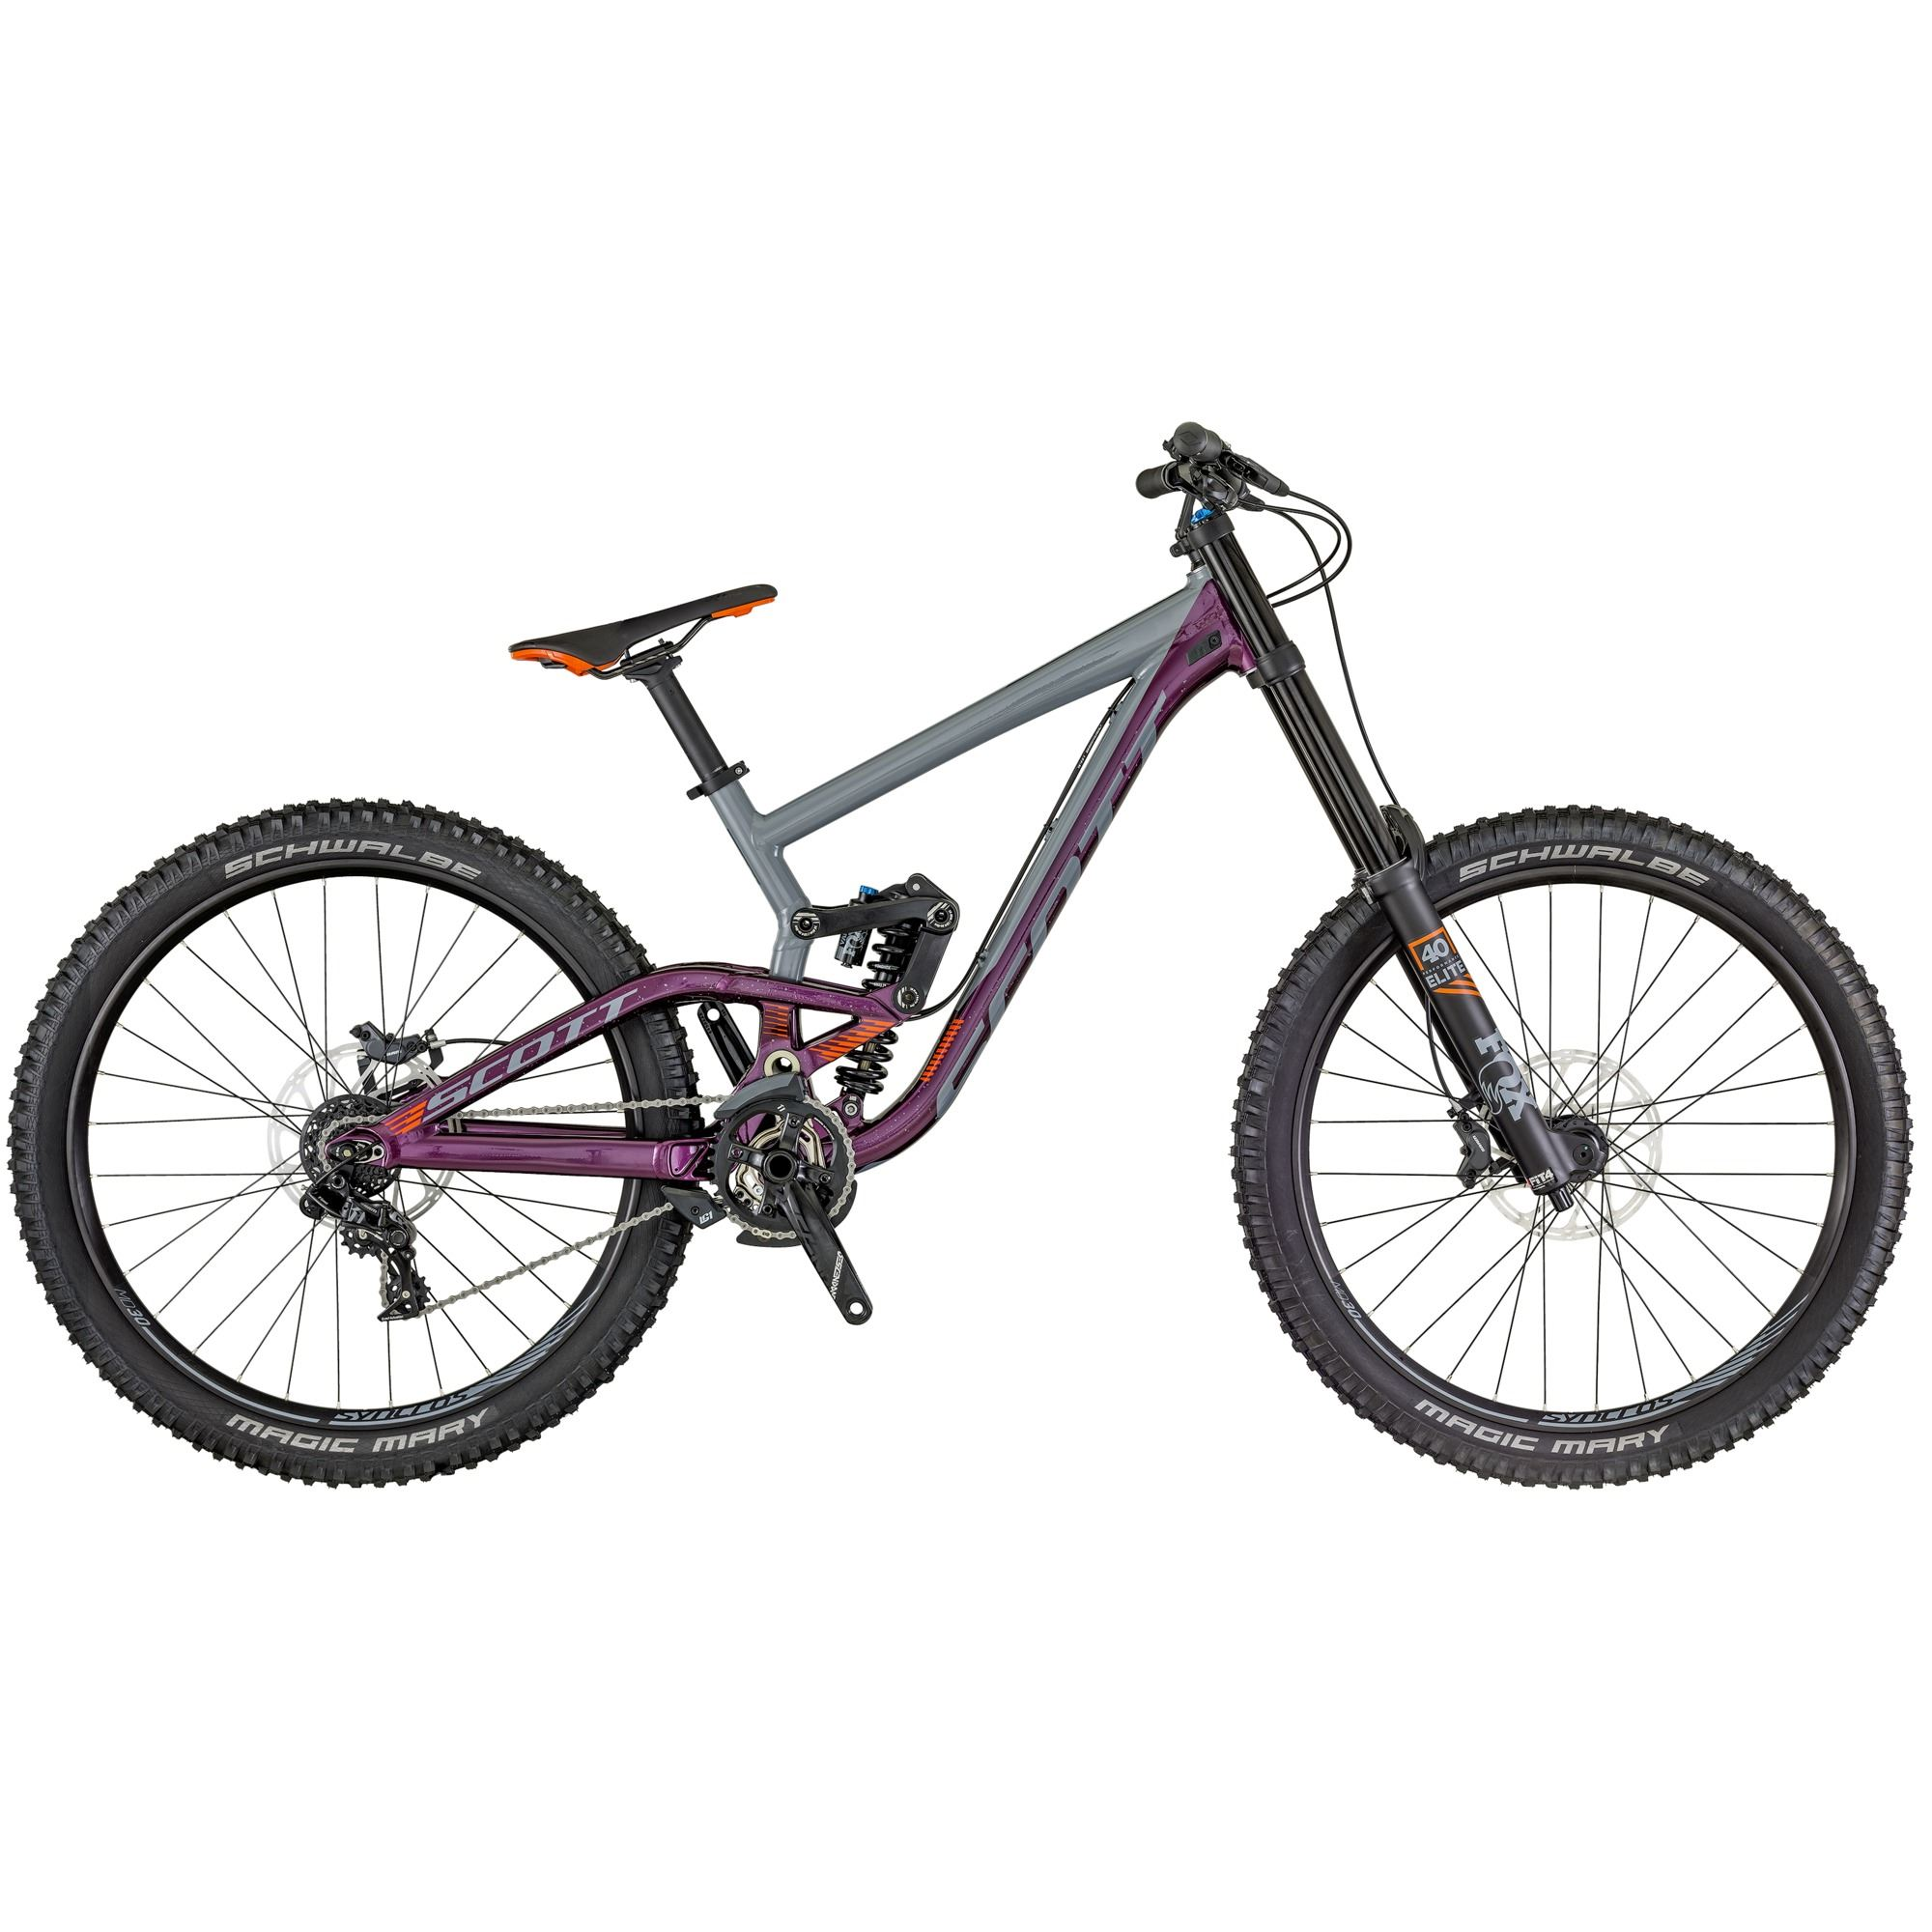 DH-bike | Scott Gambler 720 - Size S